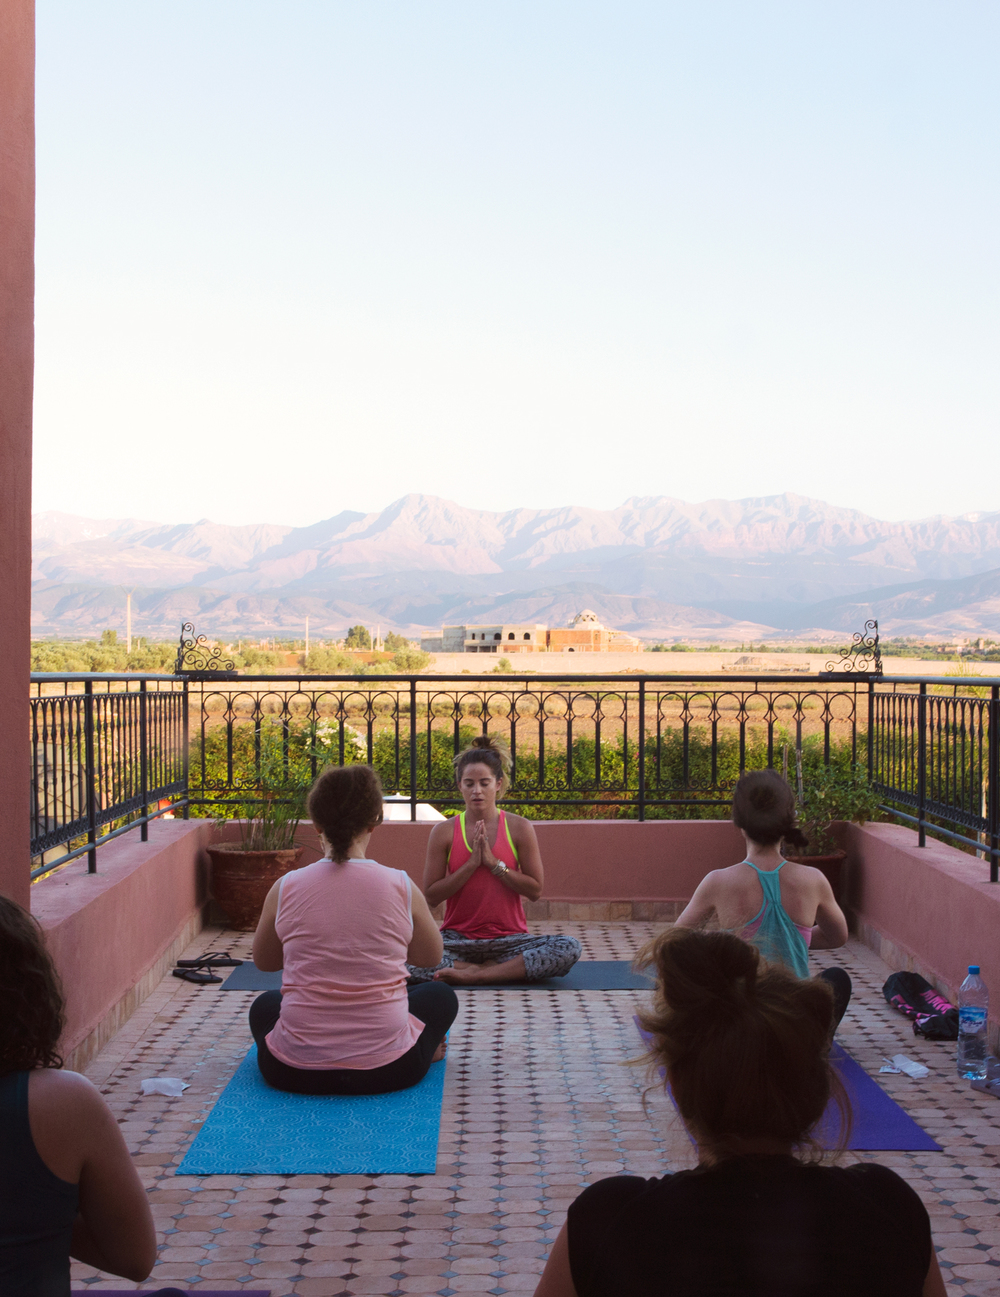 Last class at our retreat in Morocco.  Wearing:  sweaty betty pants  (now on sale!),  tank ,  bra .